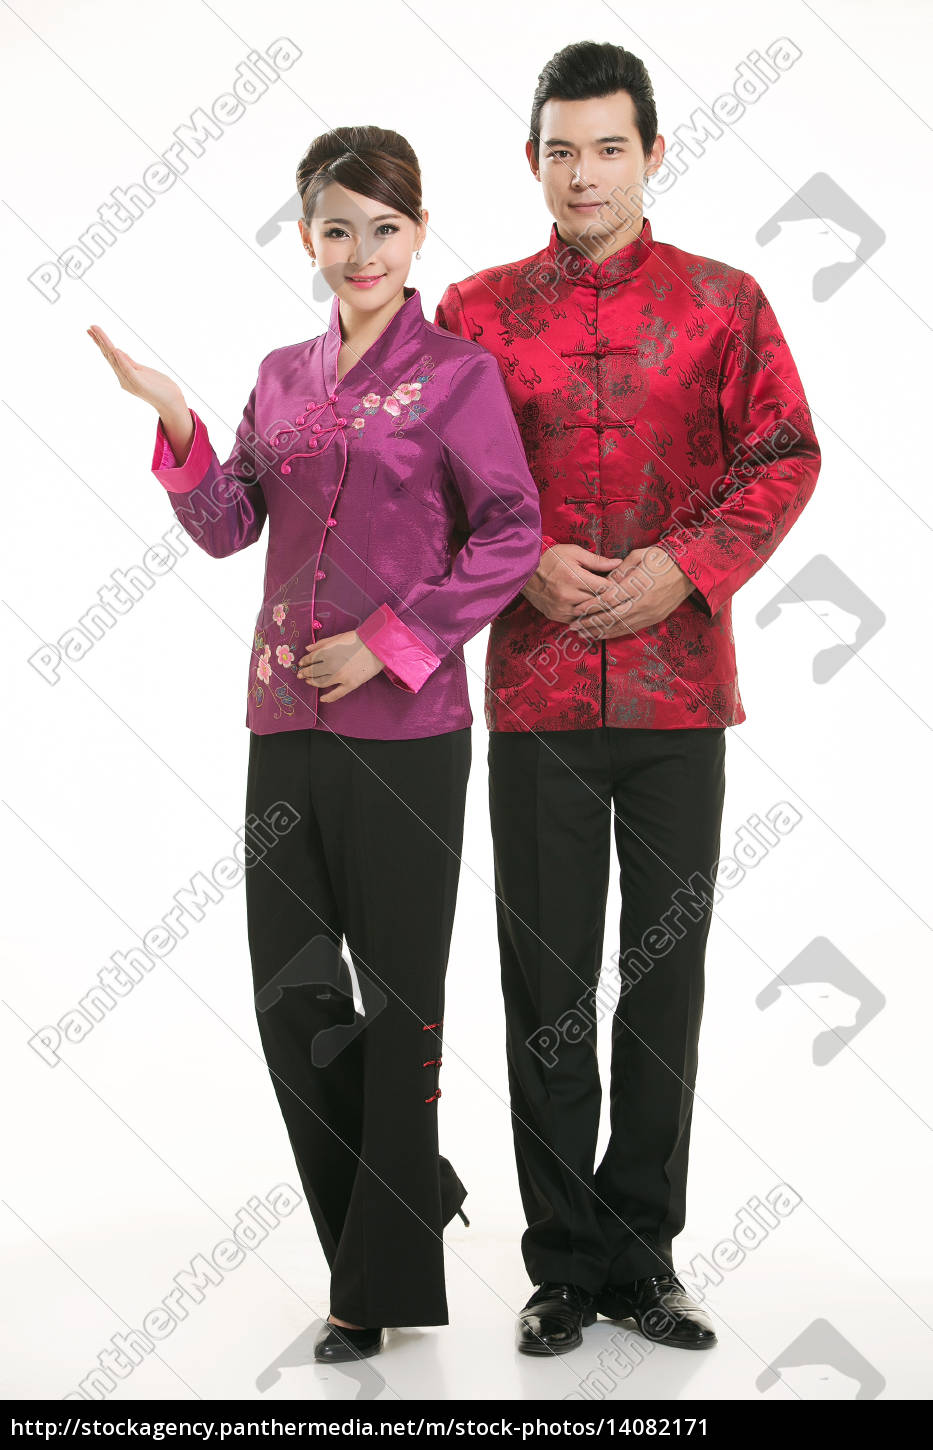 wearing, chinese, clothing, waiter, in, front - 14082171